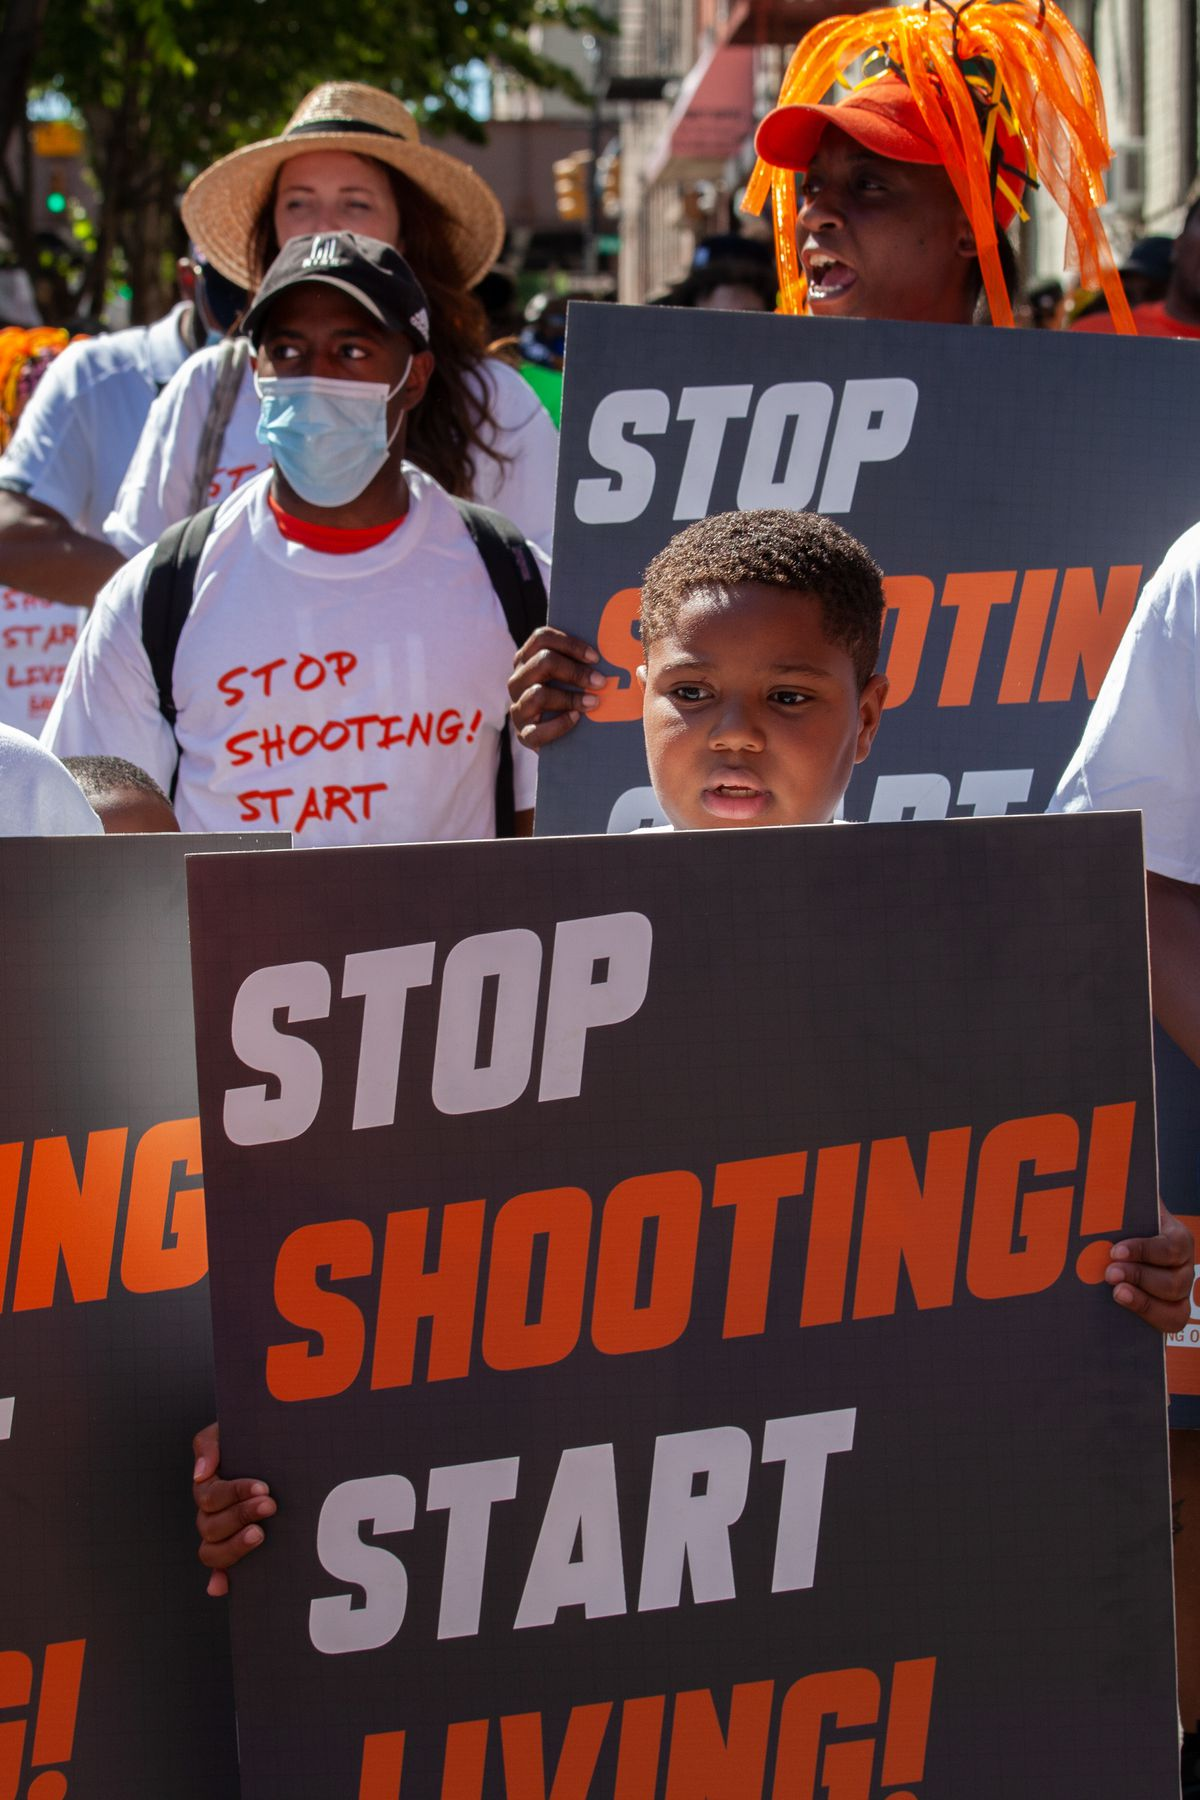 Dozens of anti-violence advocates marched through East Harlem during a surge in shootings, June 17, 2021.